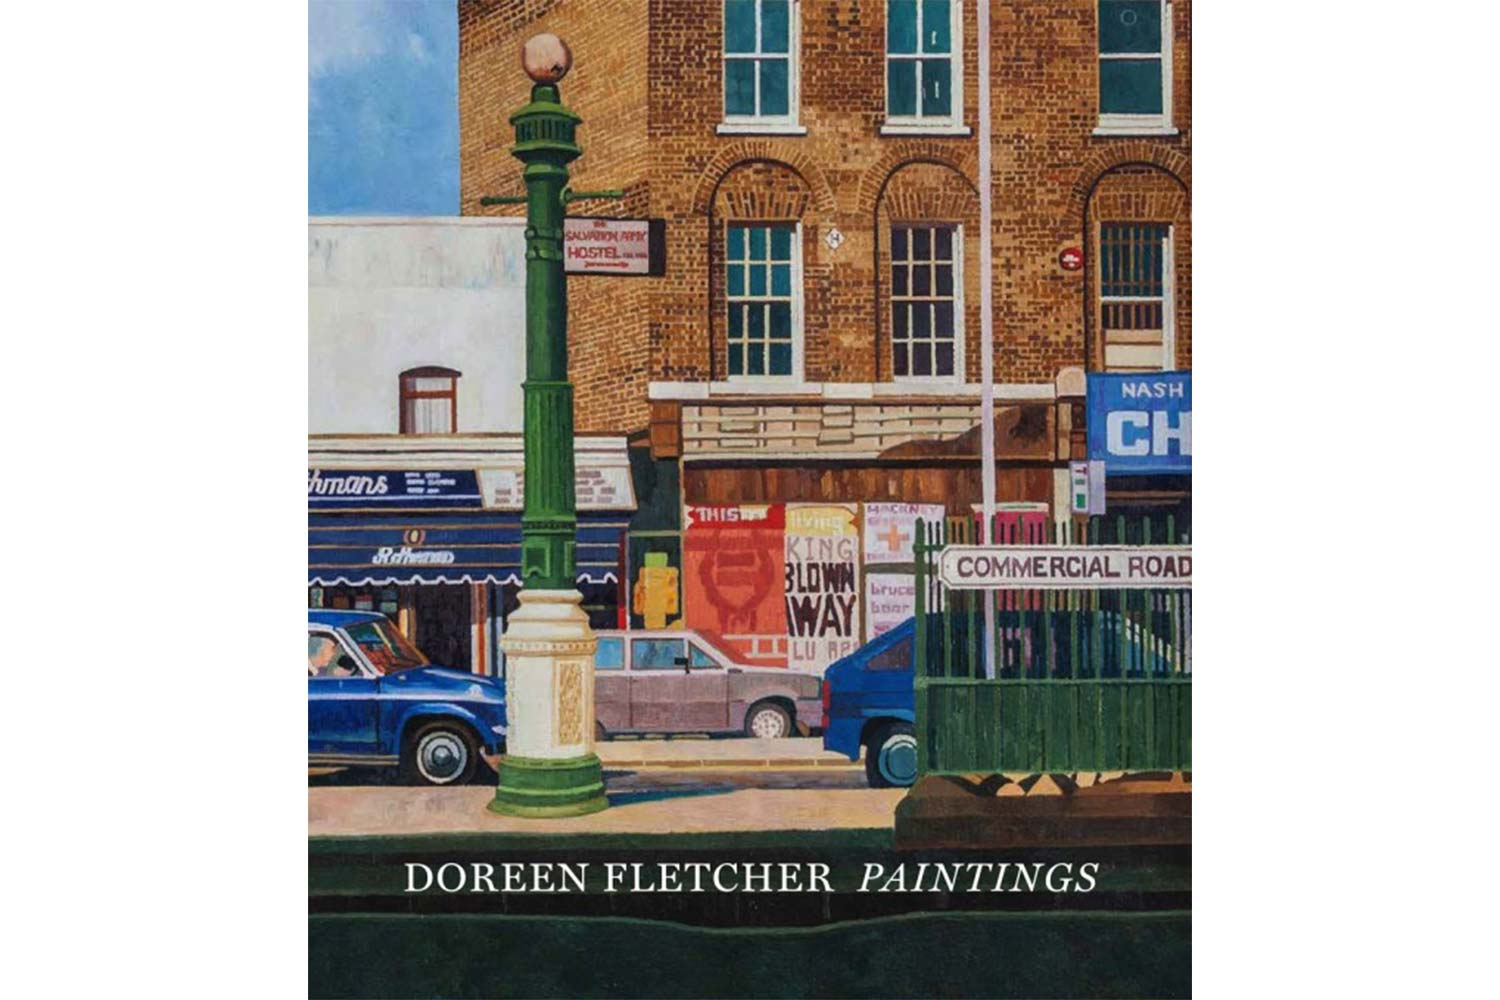 Doreen Fletcher paintings book cover